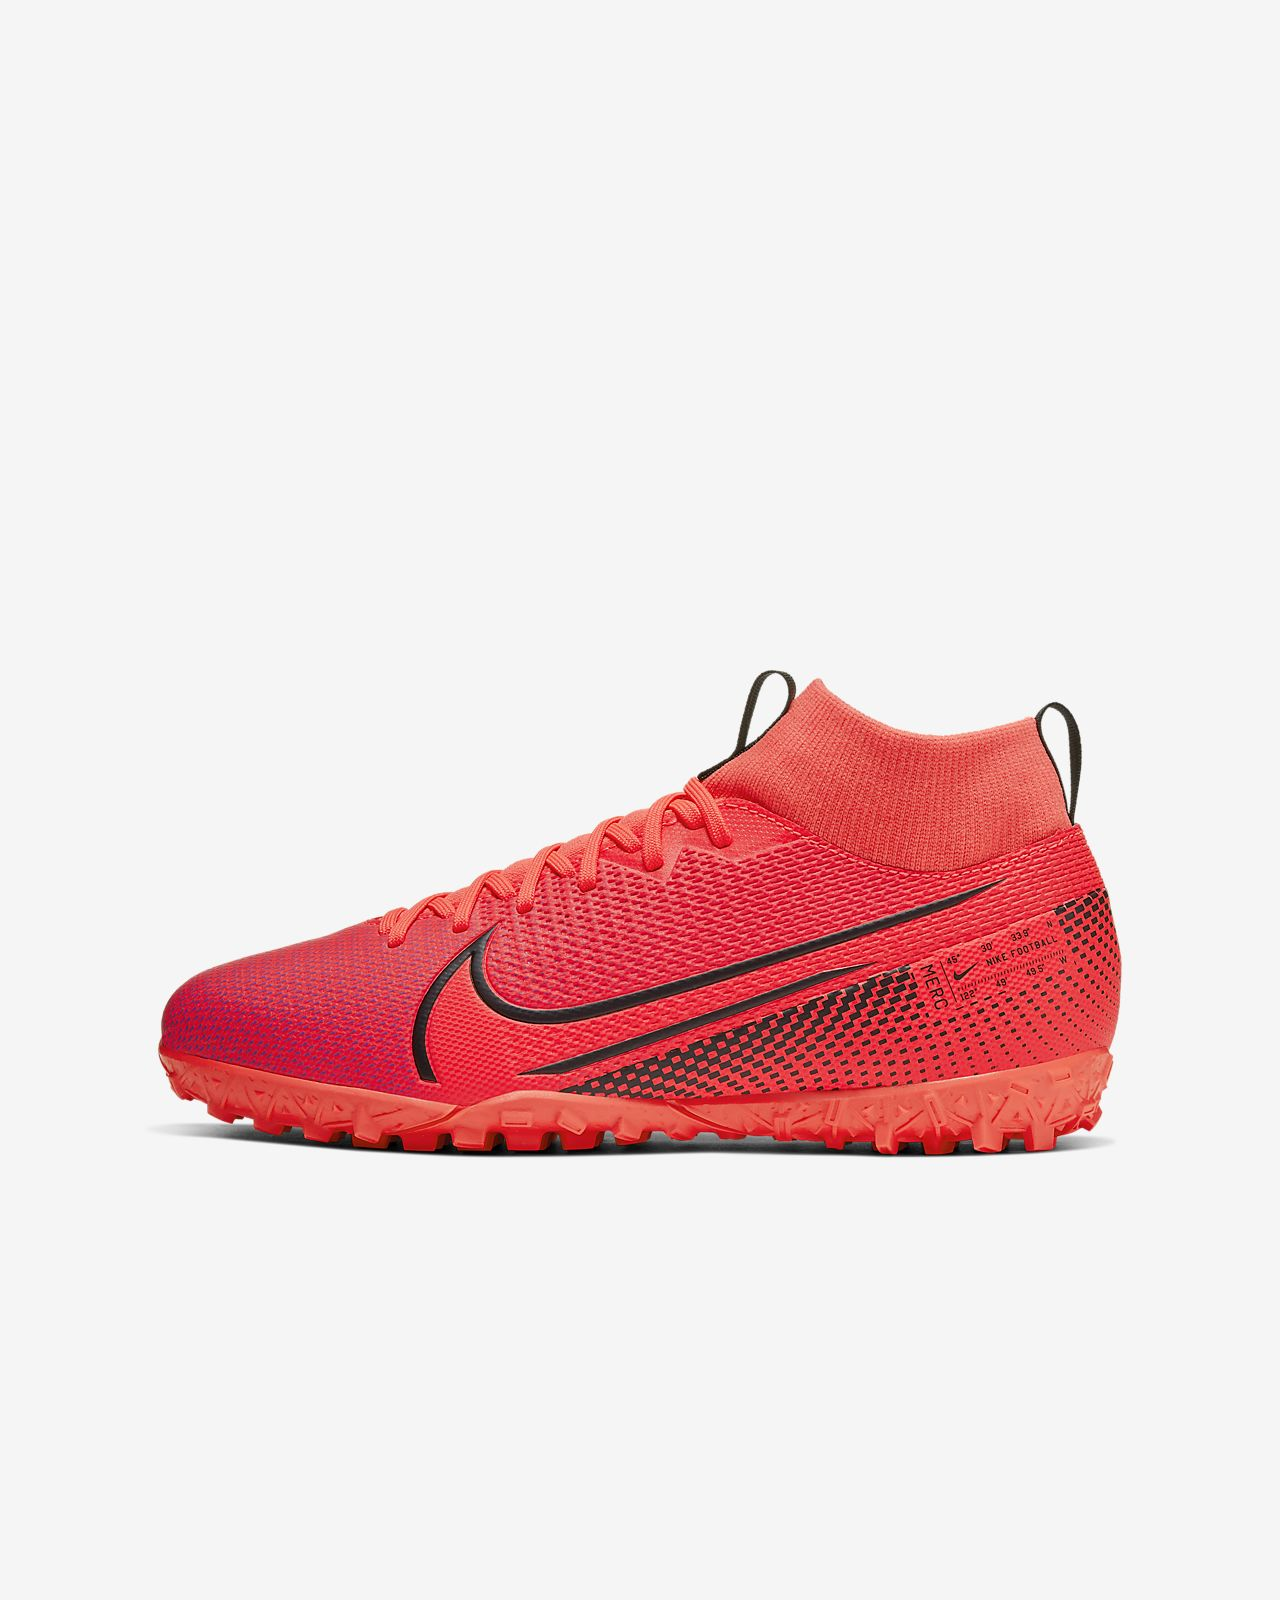 Nike Free Mercurial Superfly Men's Shoe.